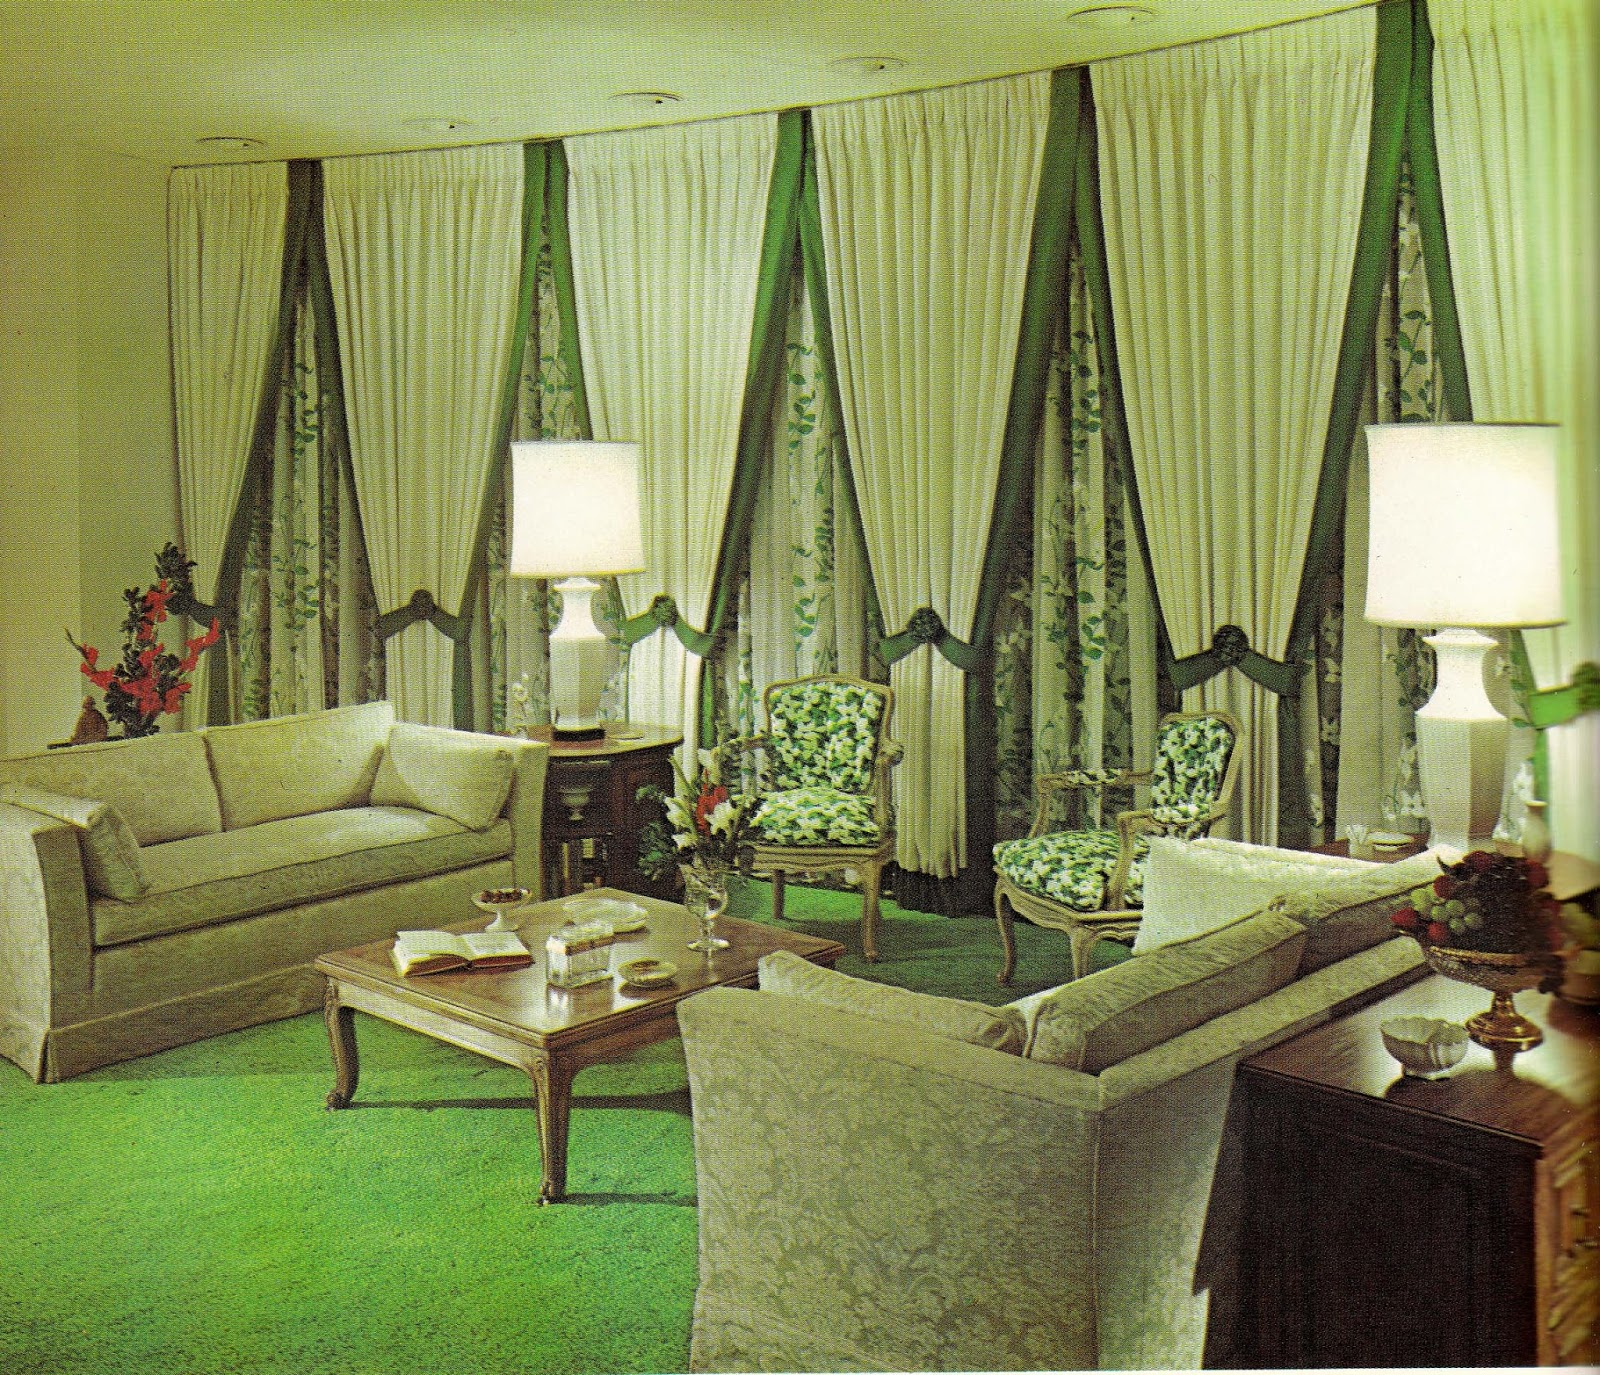 1960s Interior Décor The Decade Of Psychedelia Gave Rise